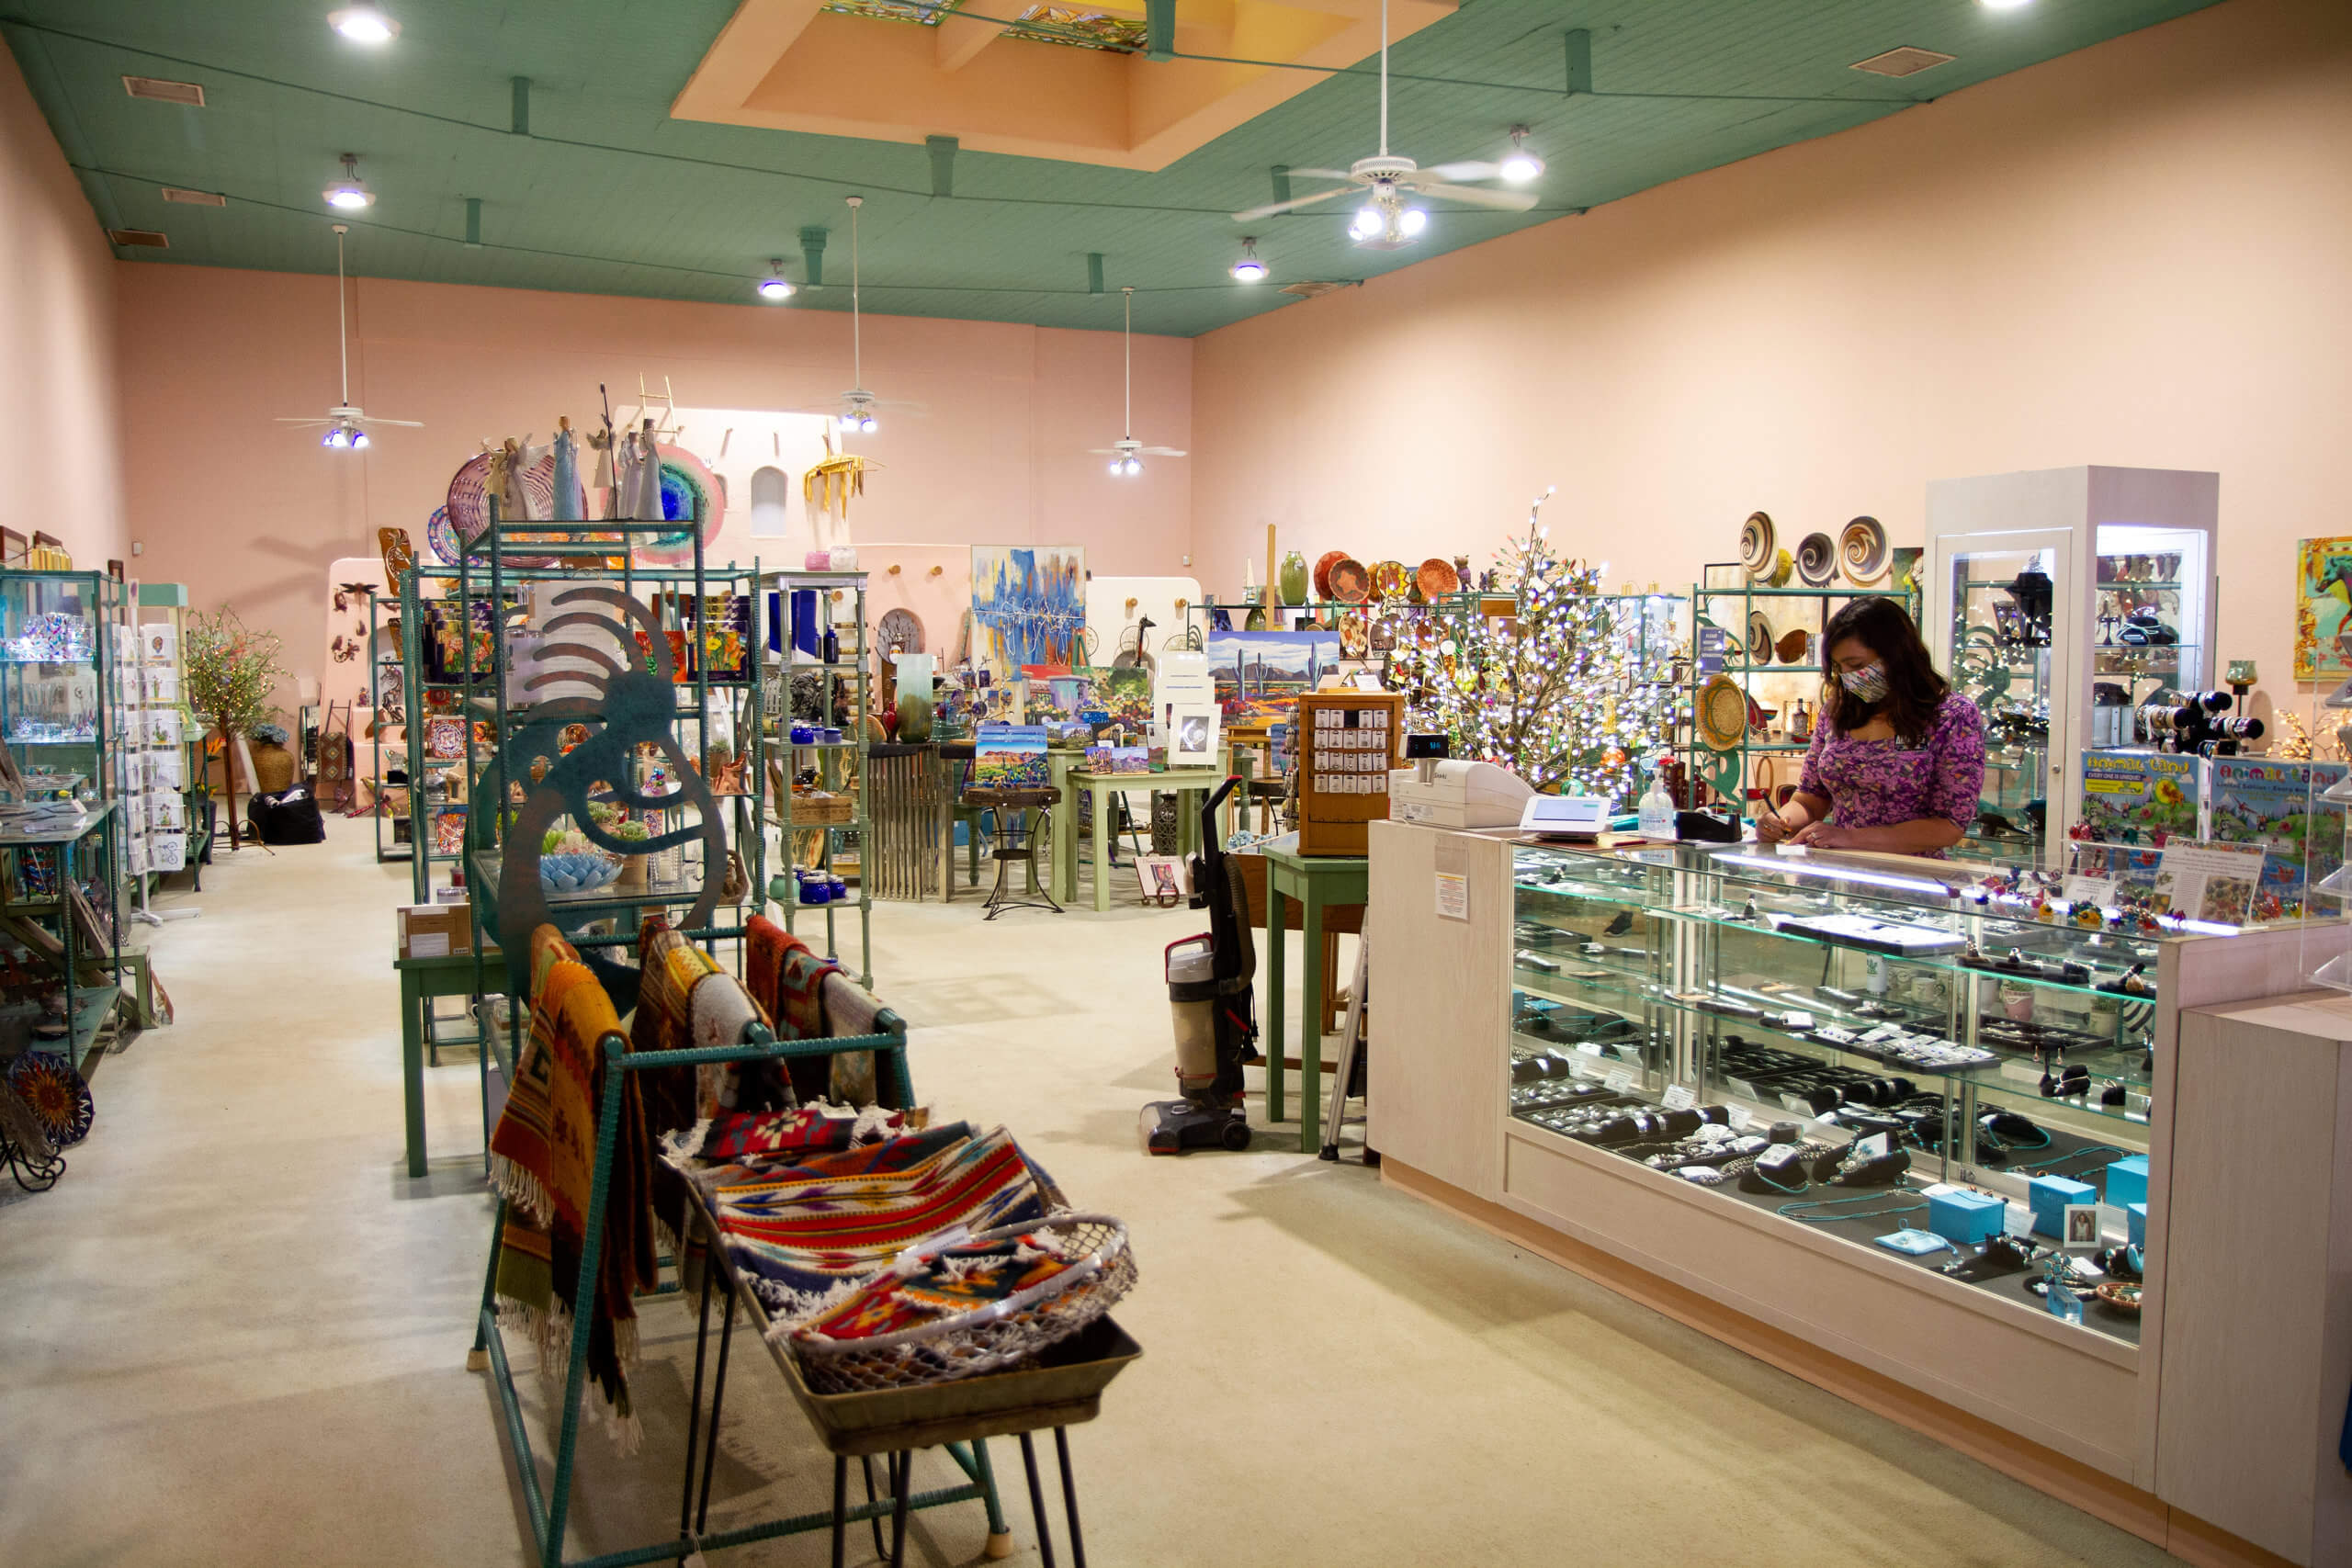 Arlenes store with Native American jewelry and gifts